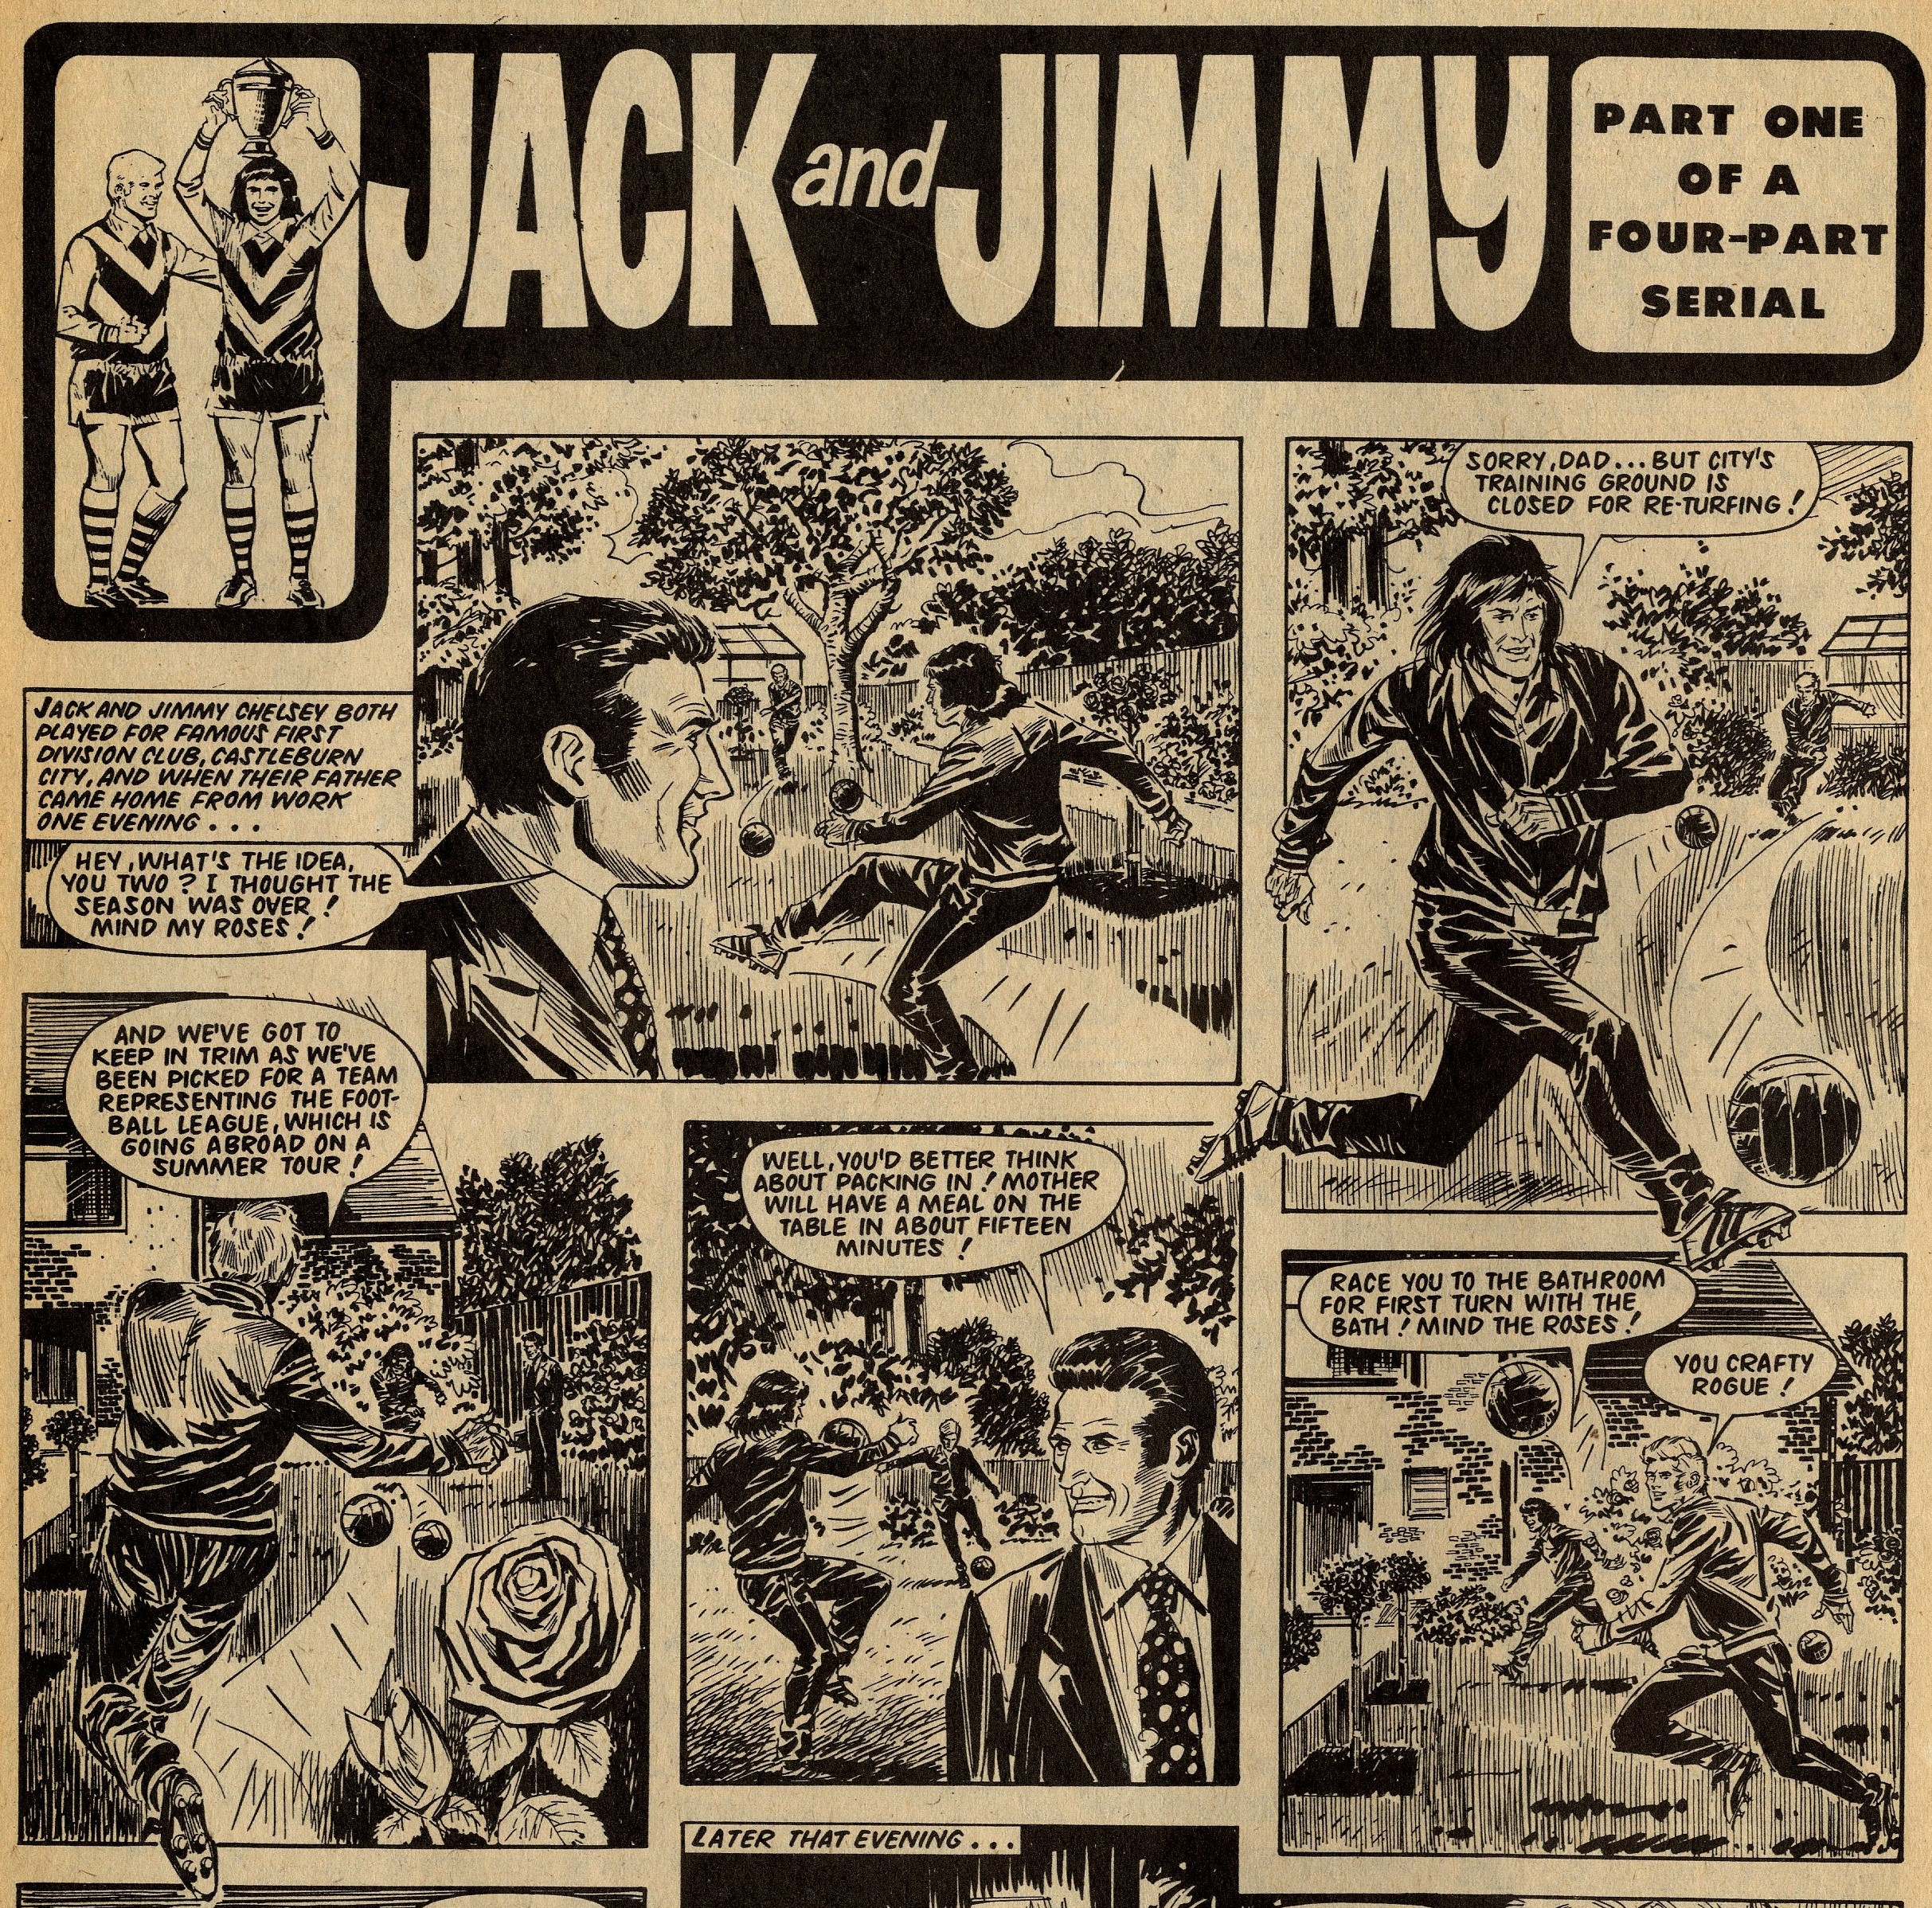 Jack and Jimmy: Barrie Mitchell (artist)